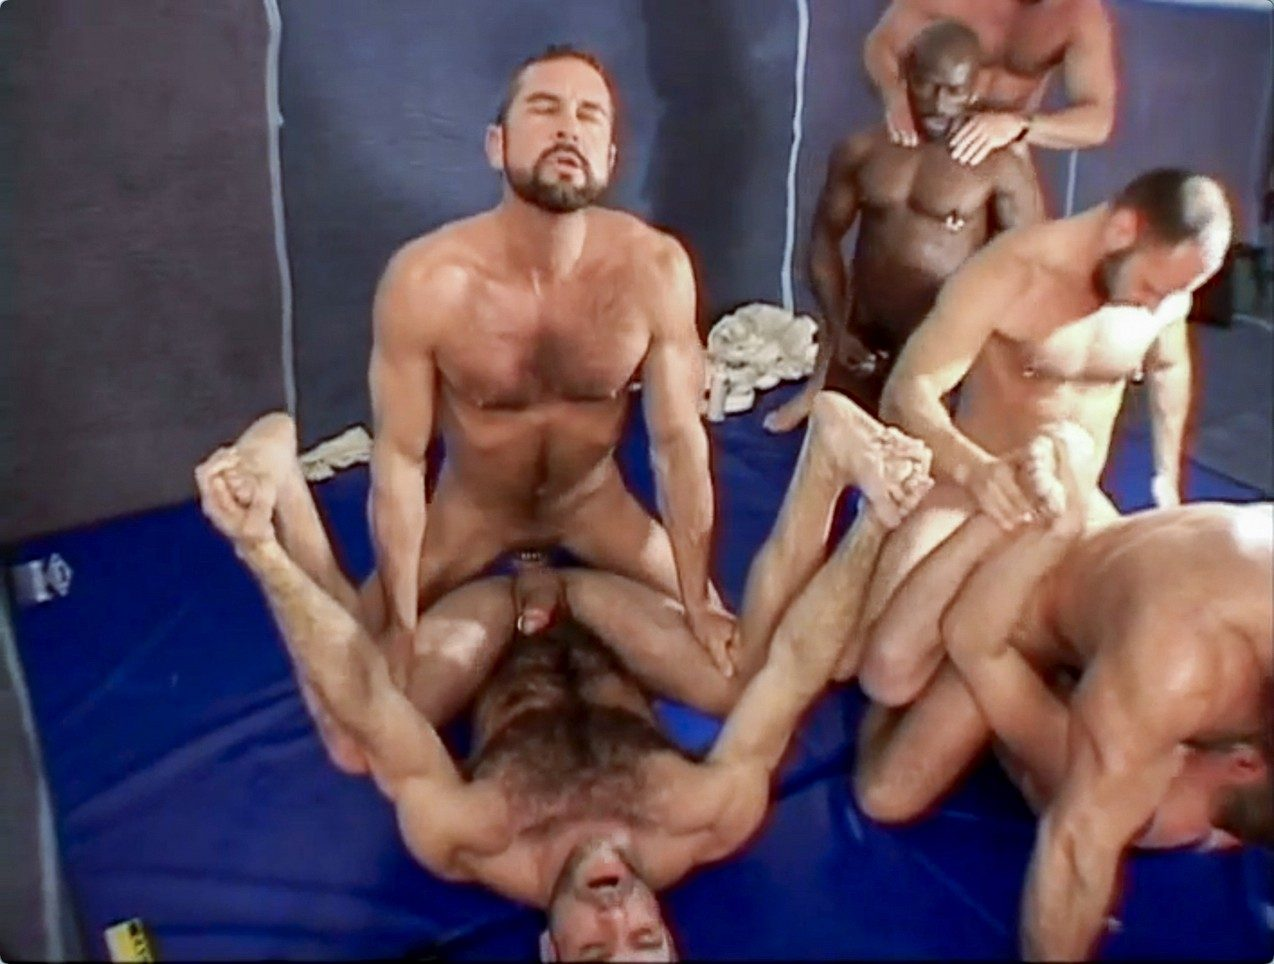 Will west gay porn